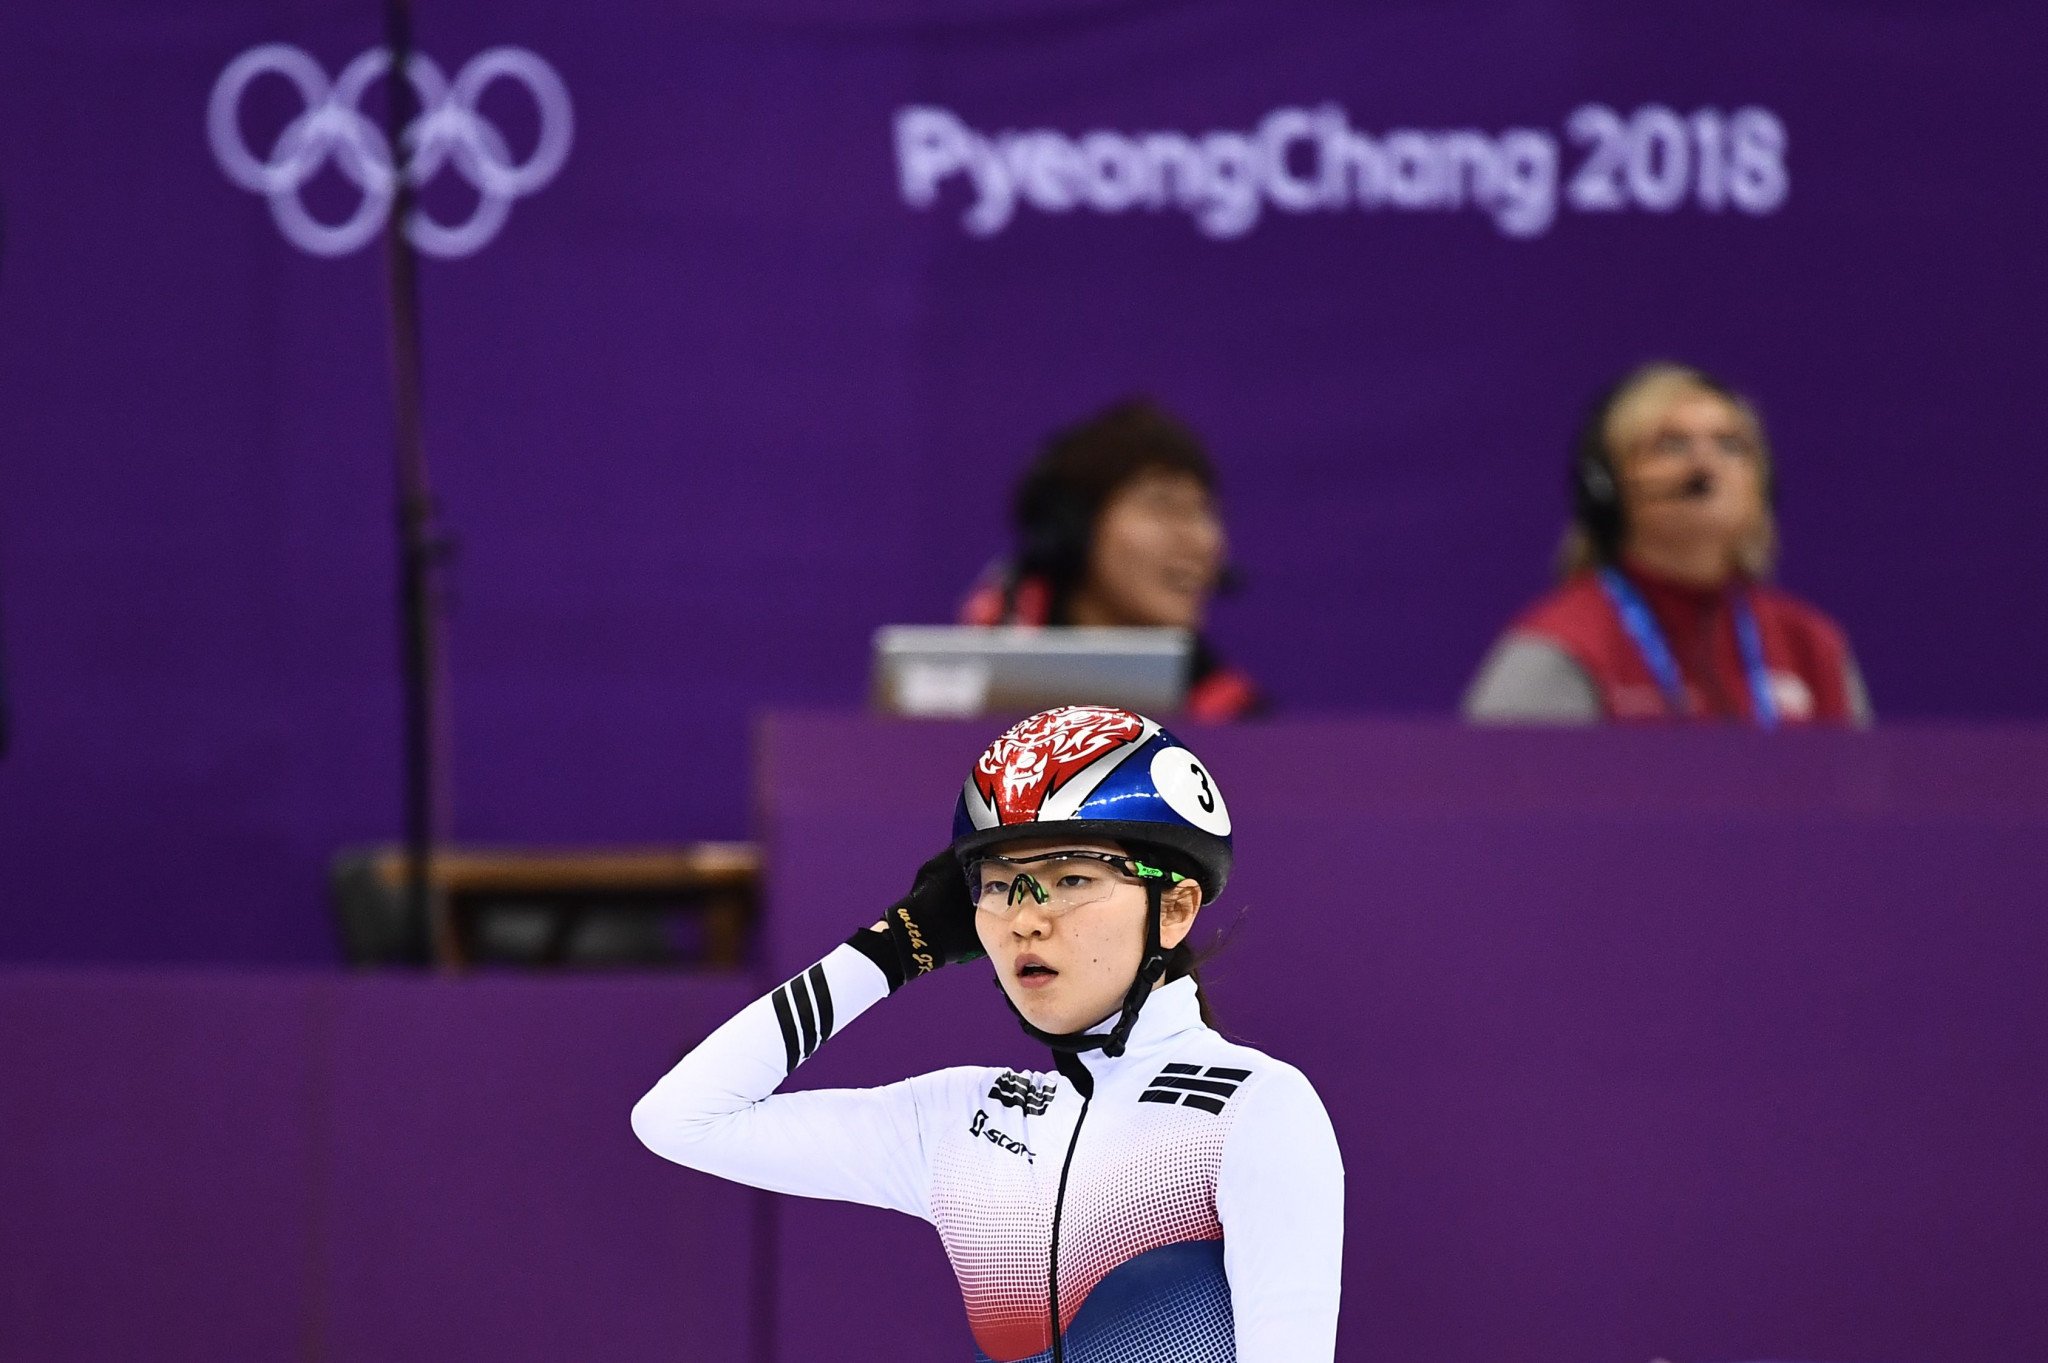 Shim Suk-hee's complaints have prompted others to speak out about sexual abuse in South Korean sport ©Getty Images